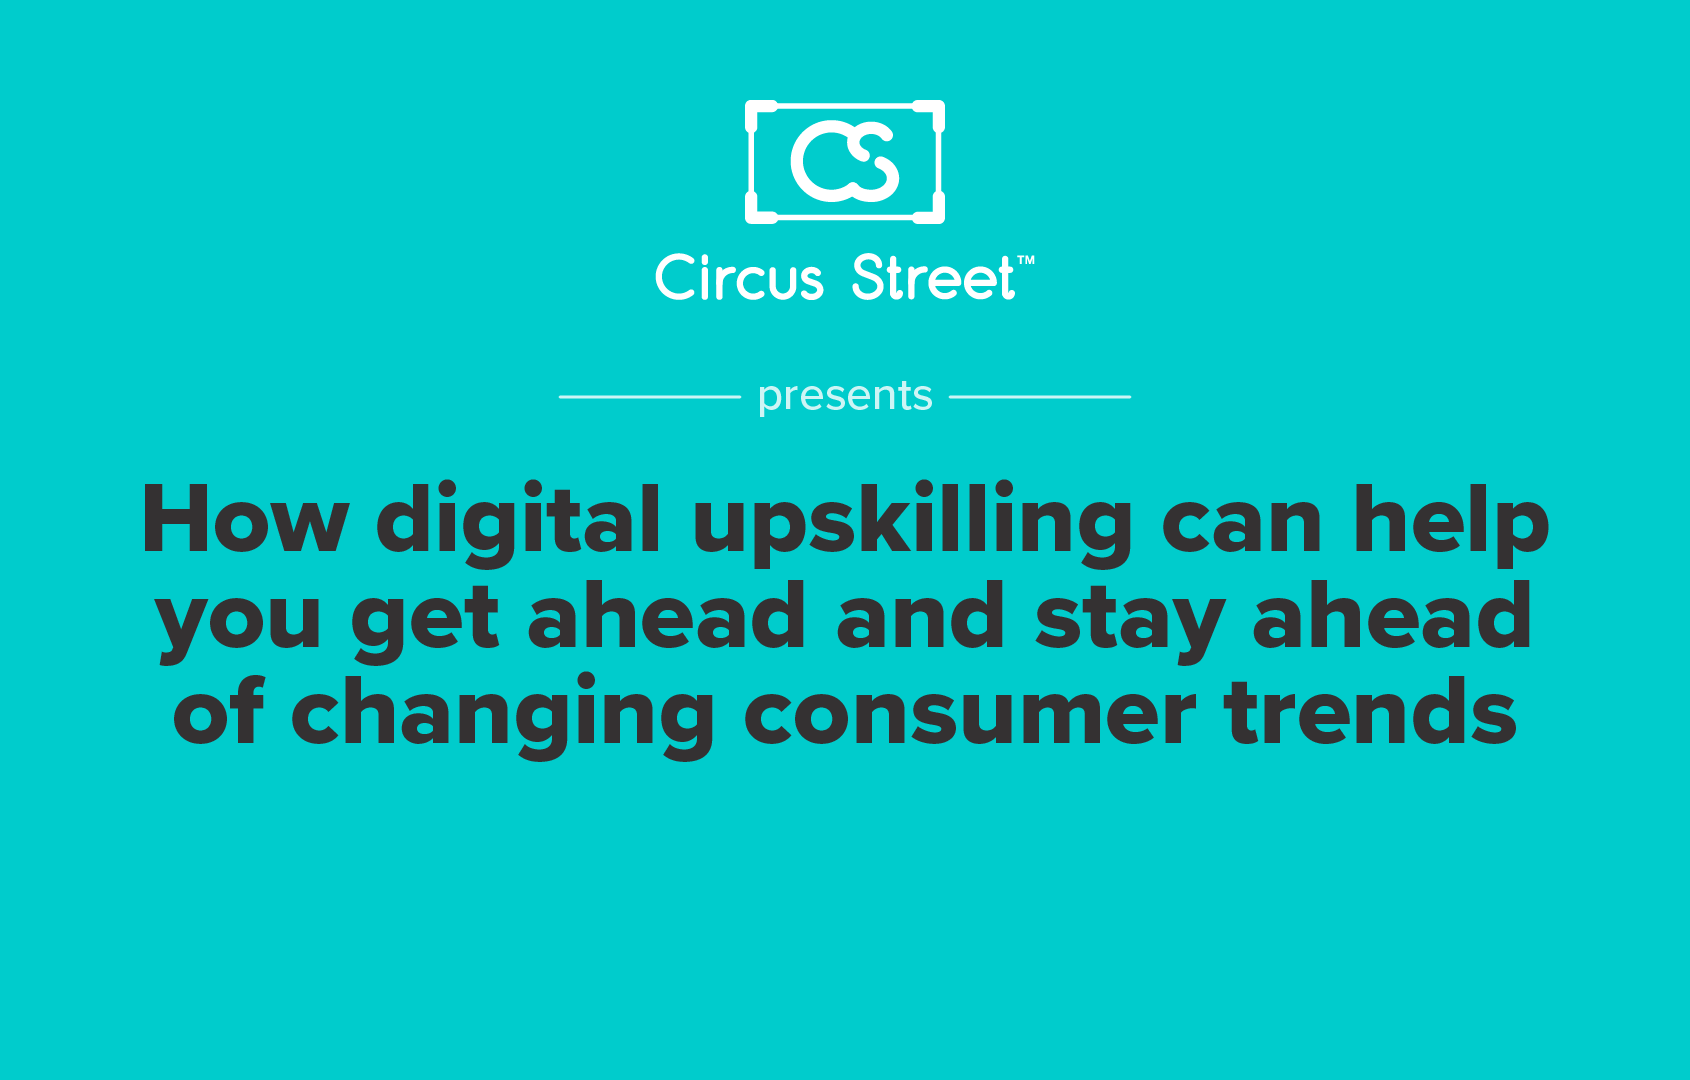 How digital upskilling can help you get ahead and stay ahead of changing consumer trends